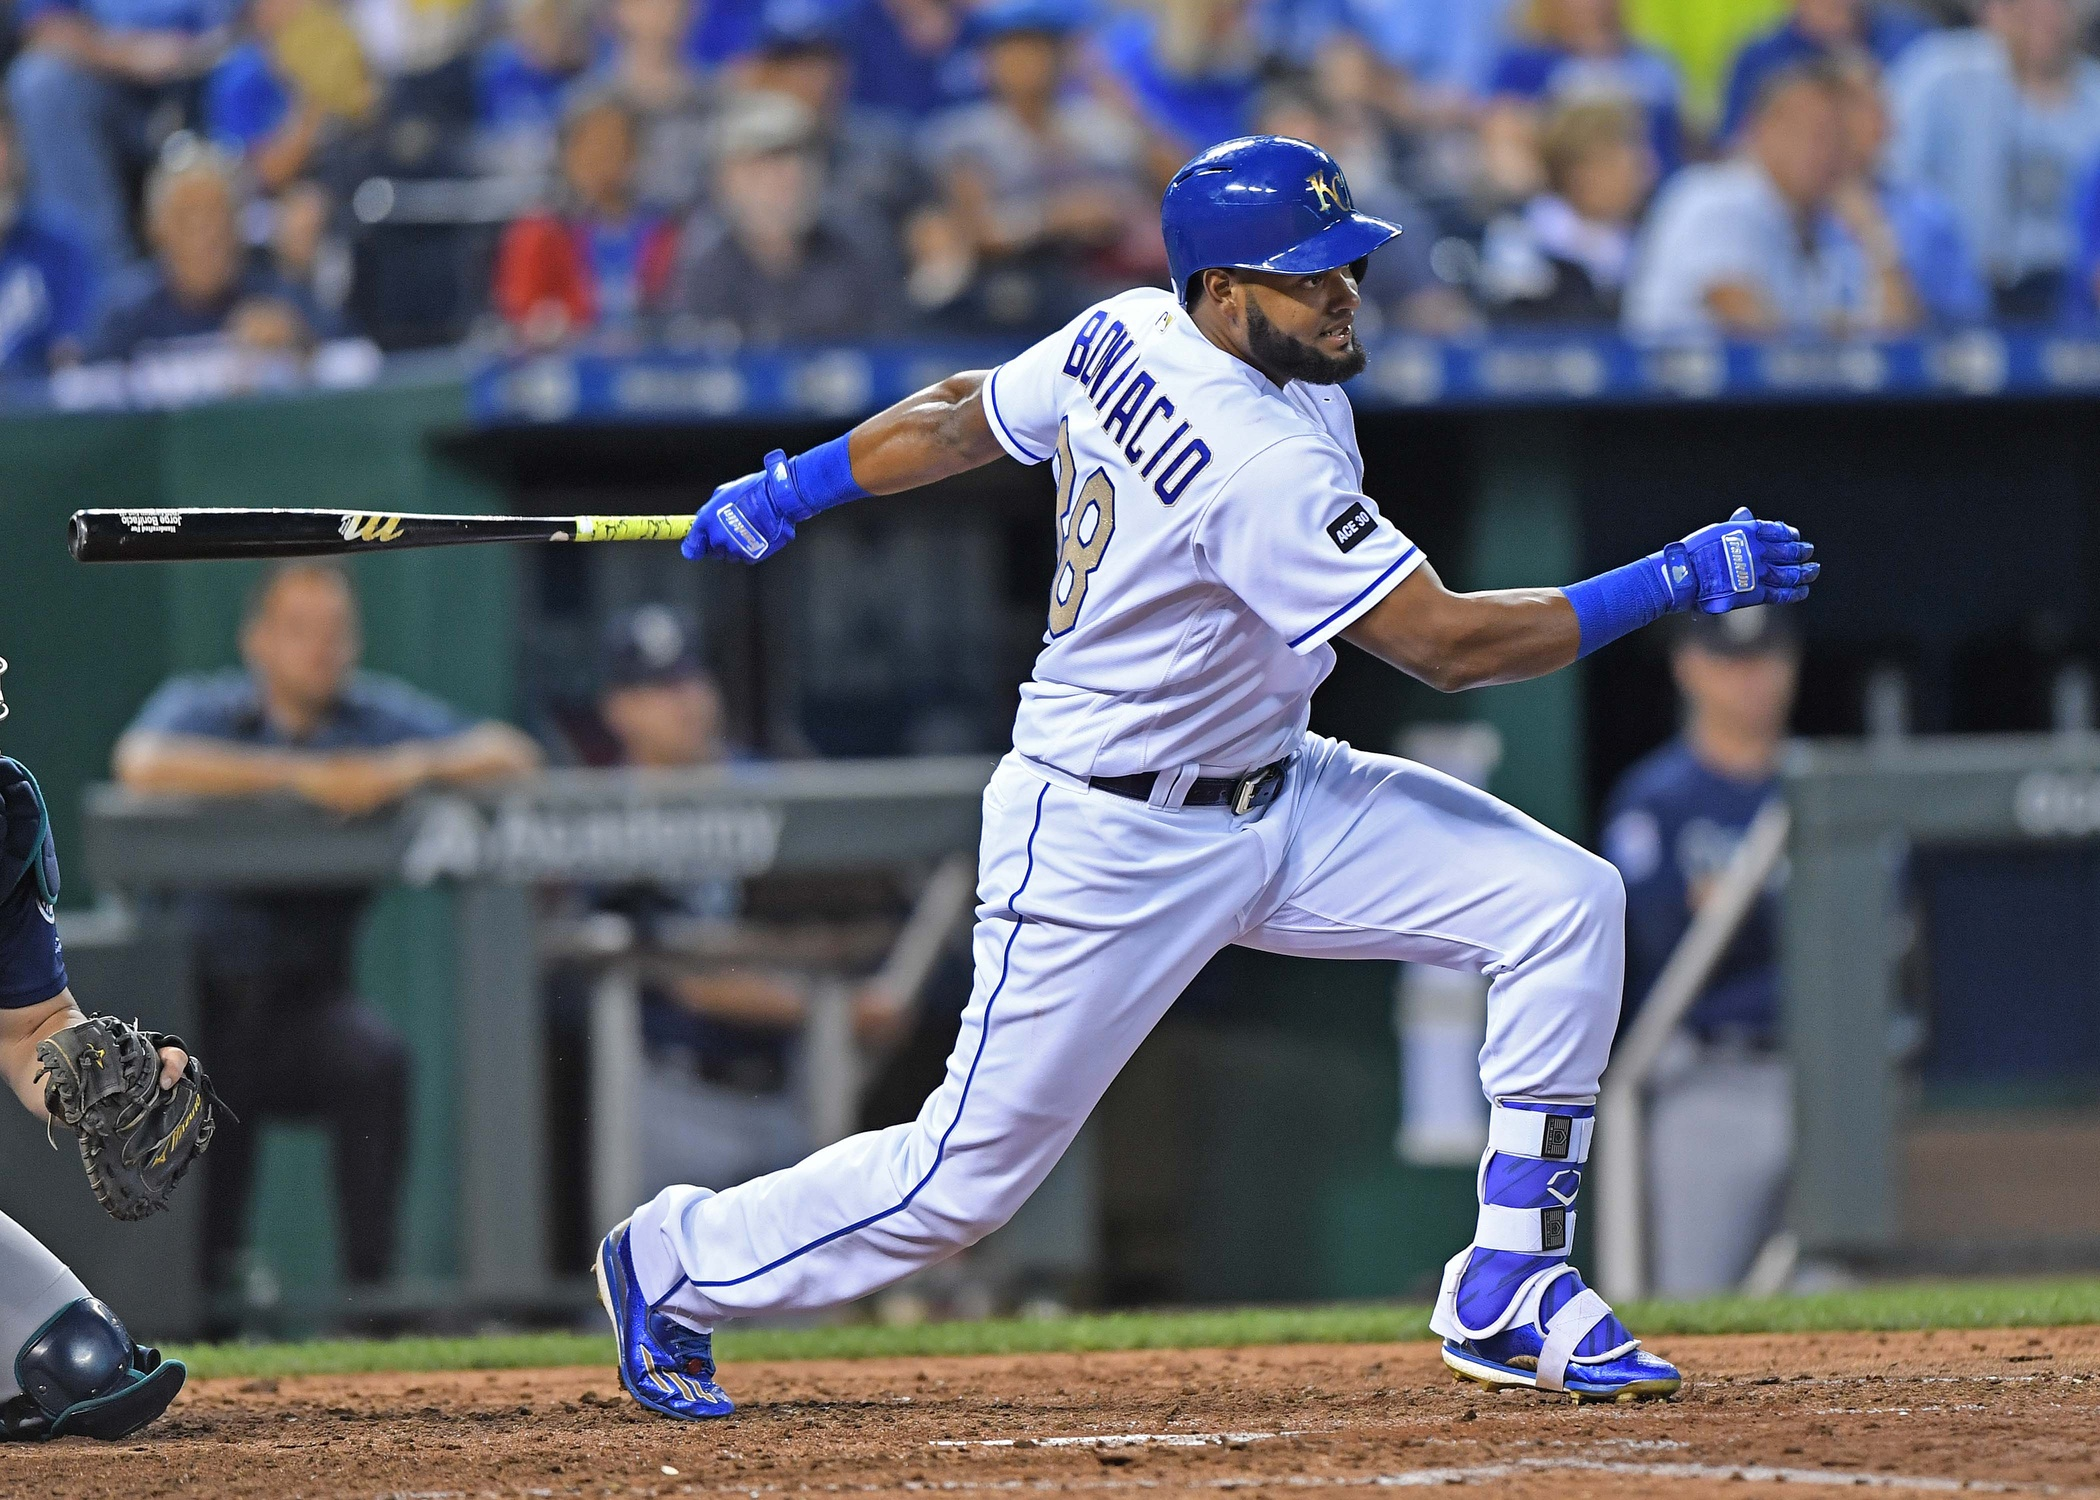 Aug 4, 2017; Kansas City, MO, USA; Kansas City Royals right fielder Jorge Bonifacio (38) at bat during a game against the Seattle Mariners at Kauffman Stadium. Mandatory Credit: Peter G. Aiken-USA TODAY Sports